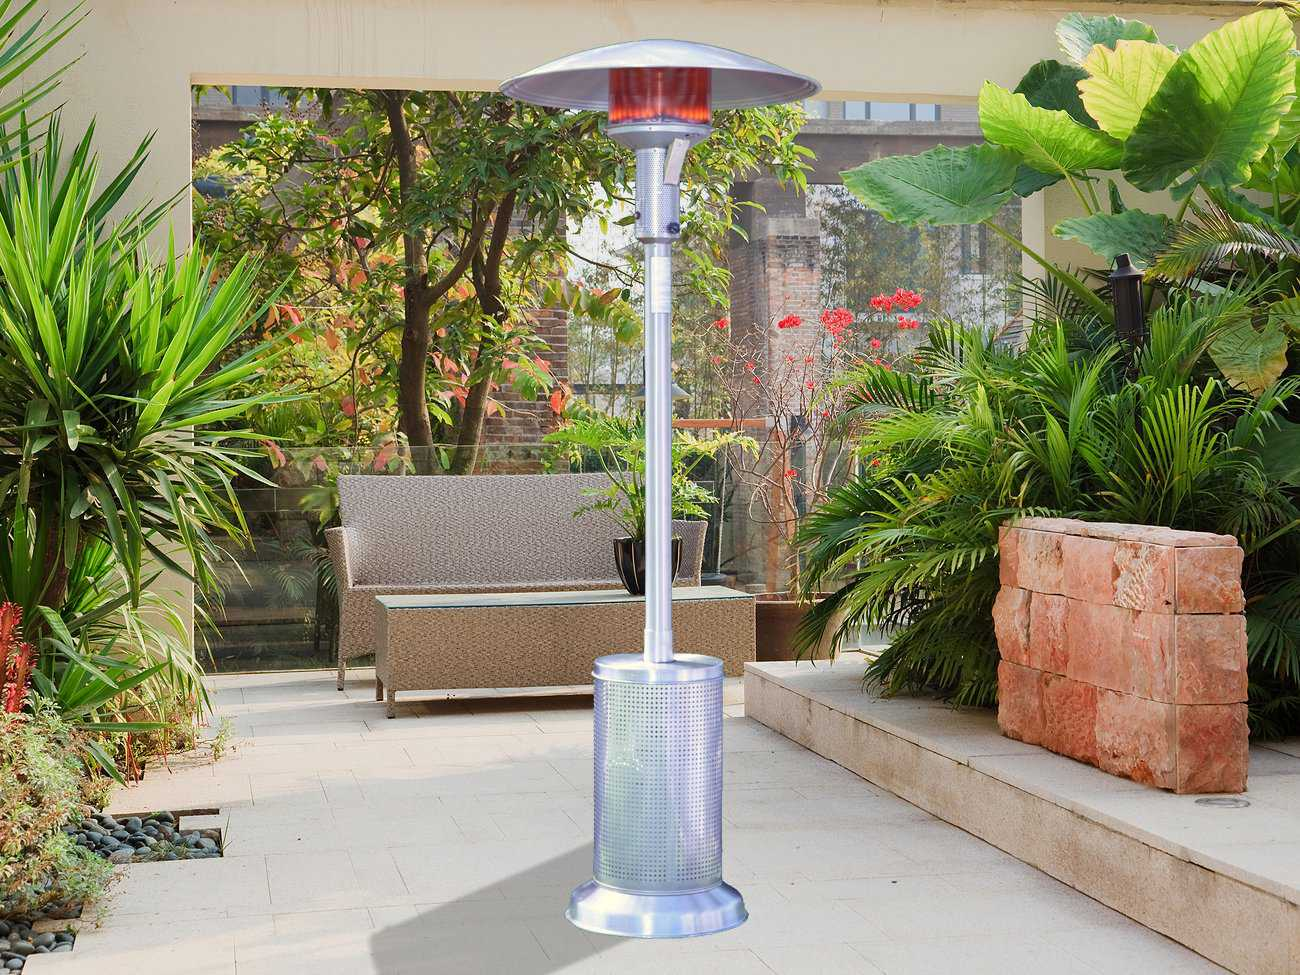 Sunglo Stainless Steel Infrared Portable Propane Heater